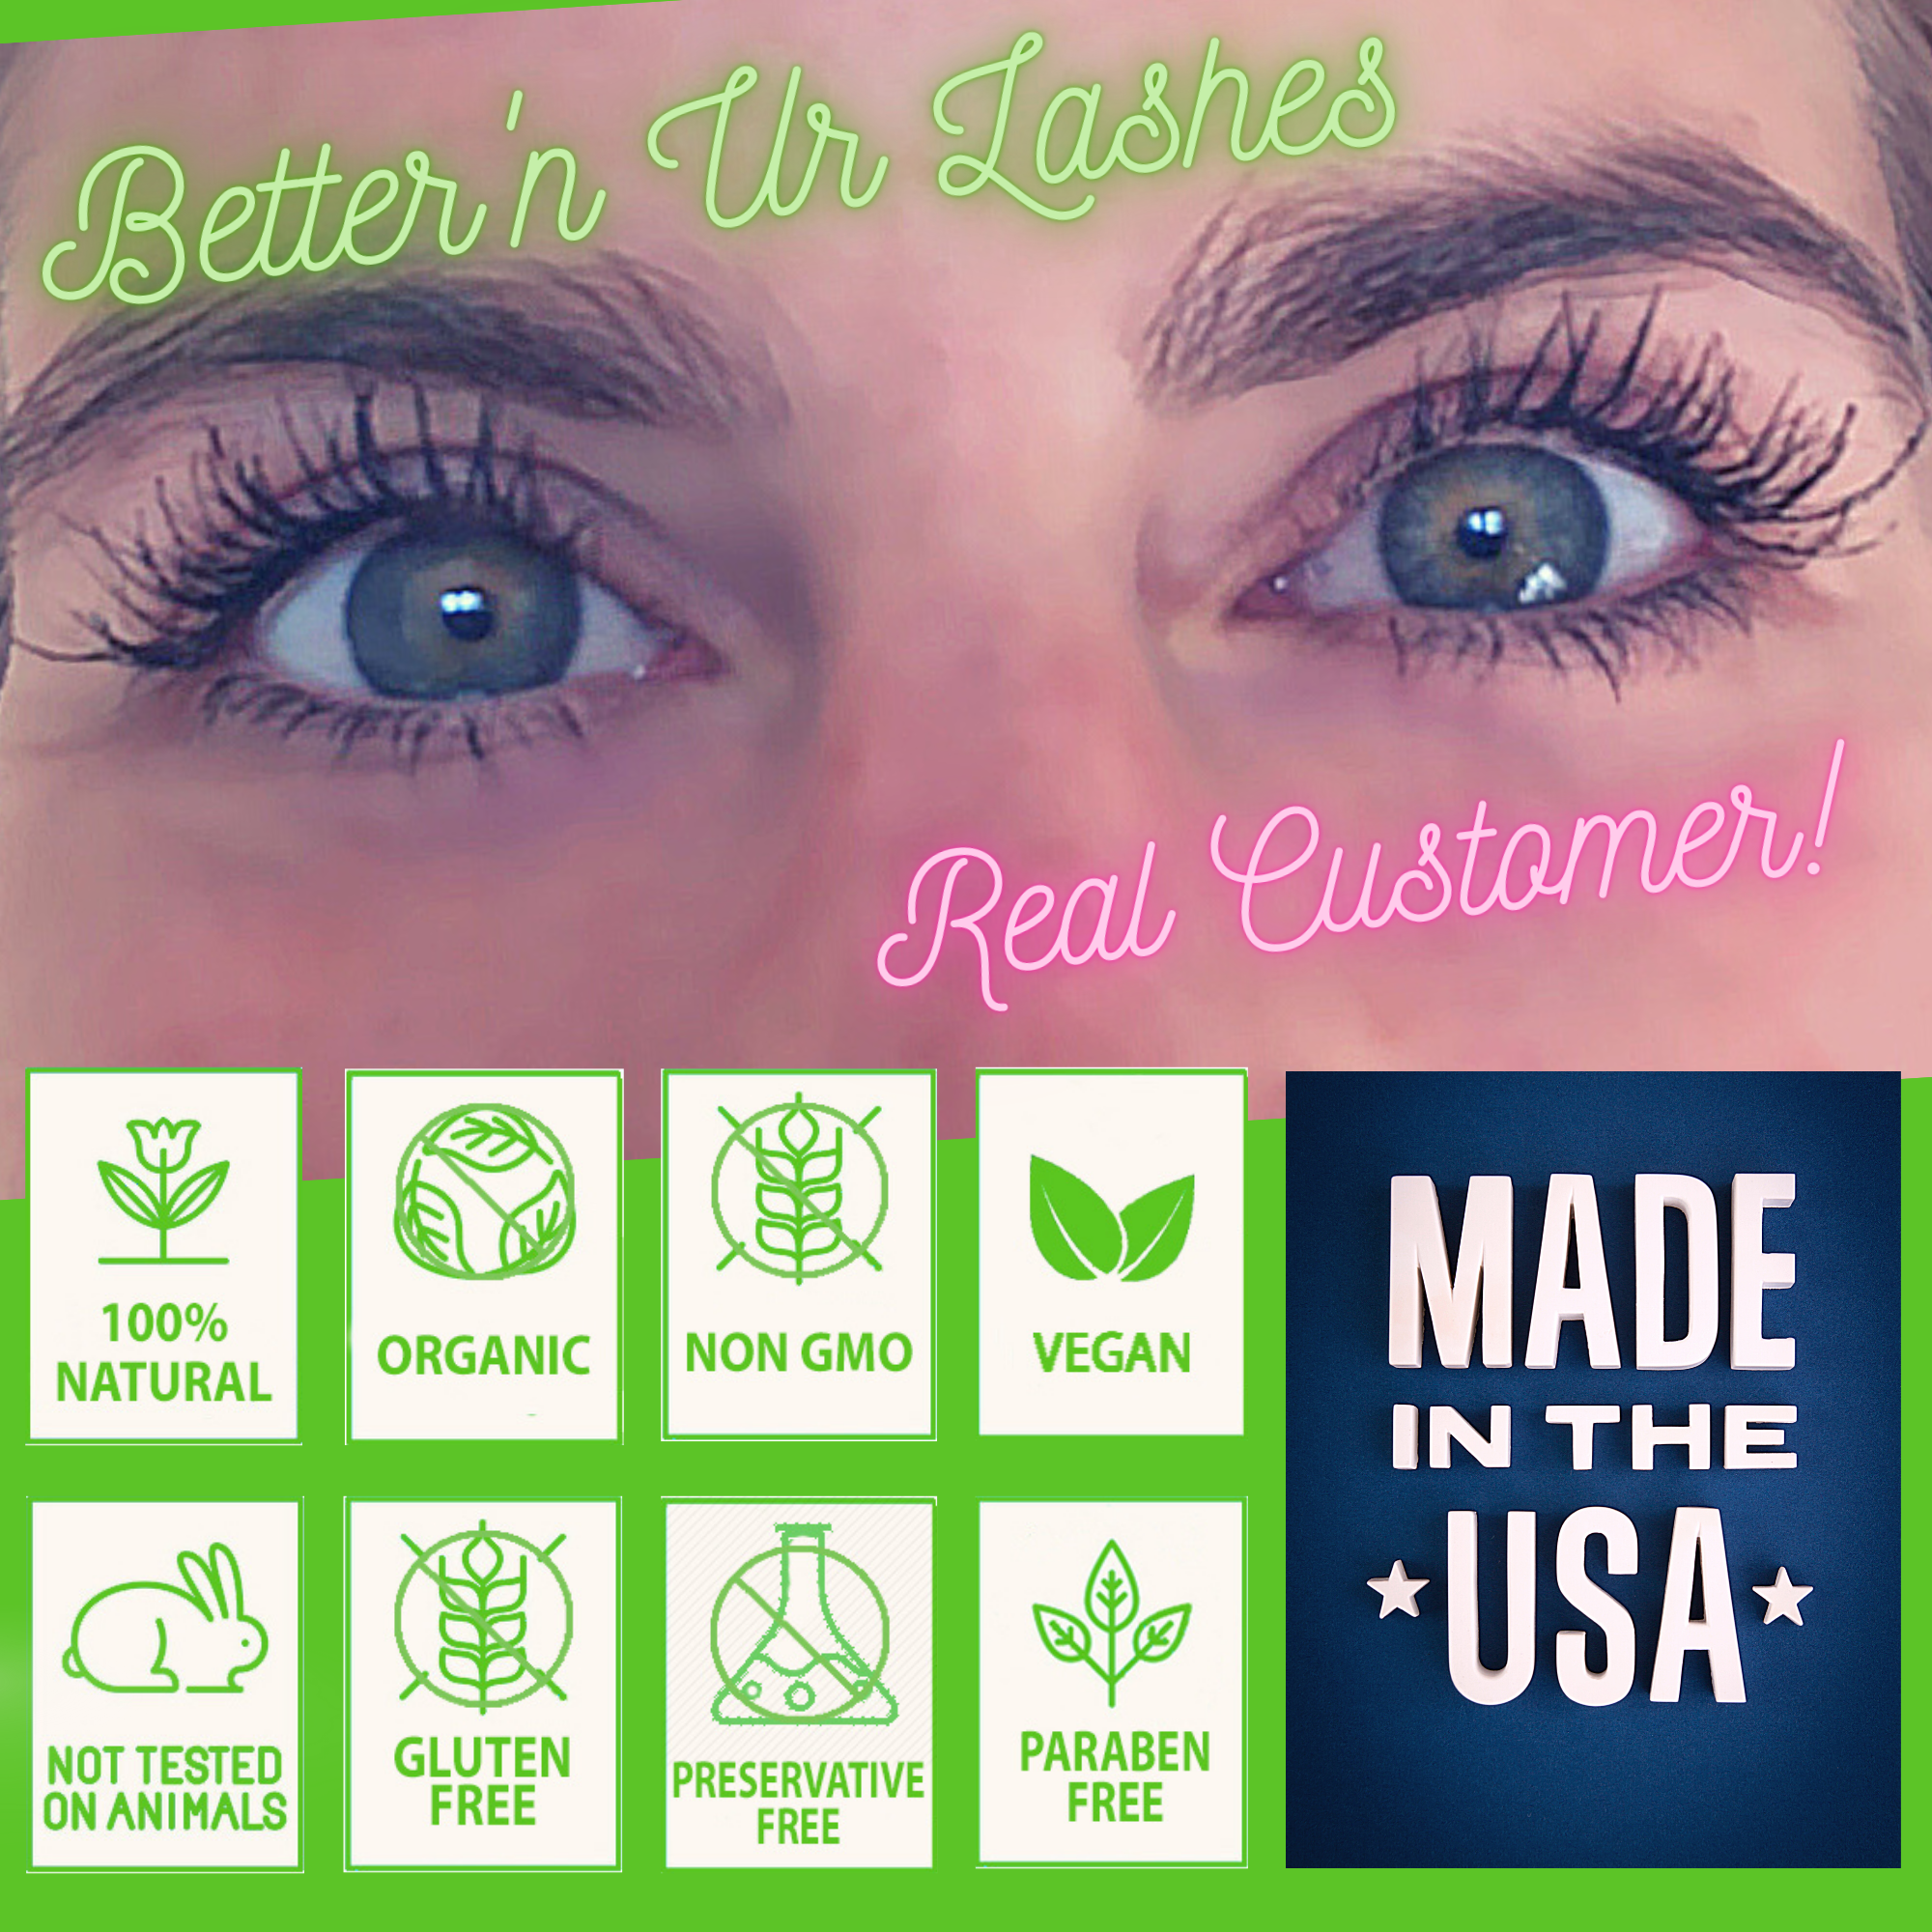 better-n-ur-lashes-stamps-5-.png